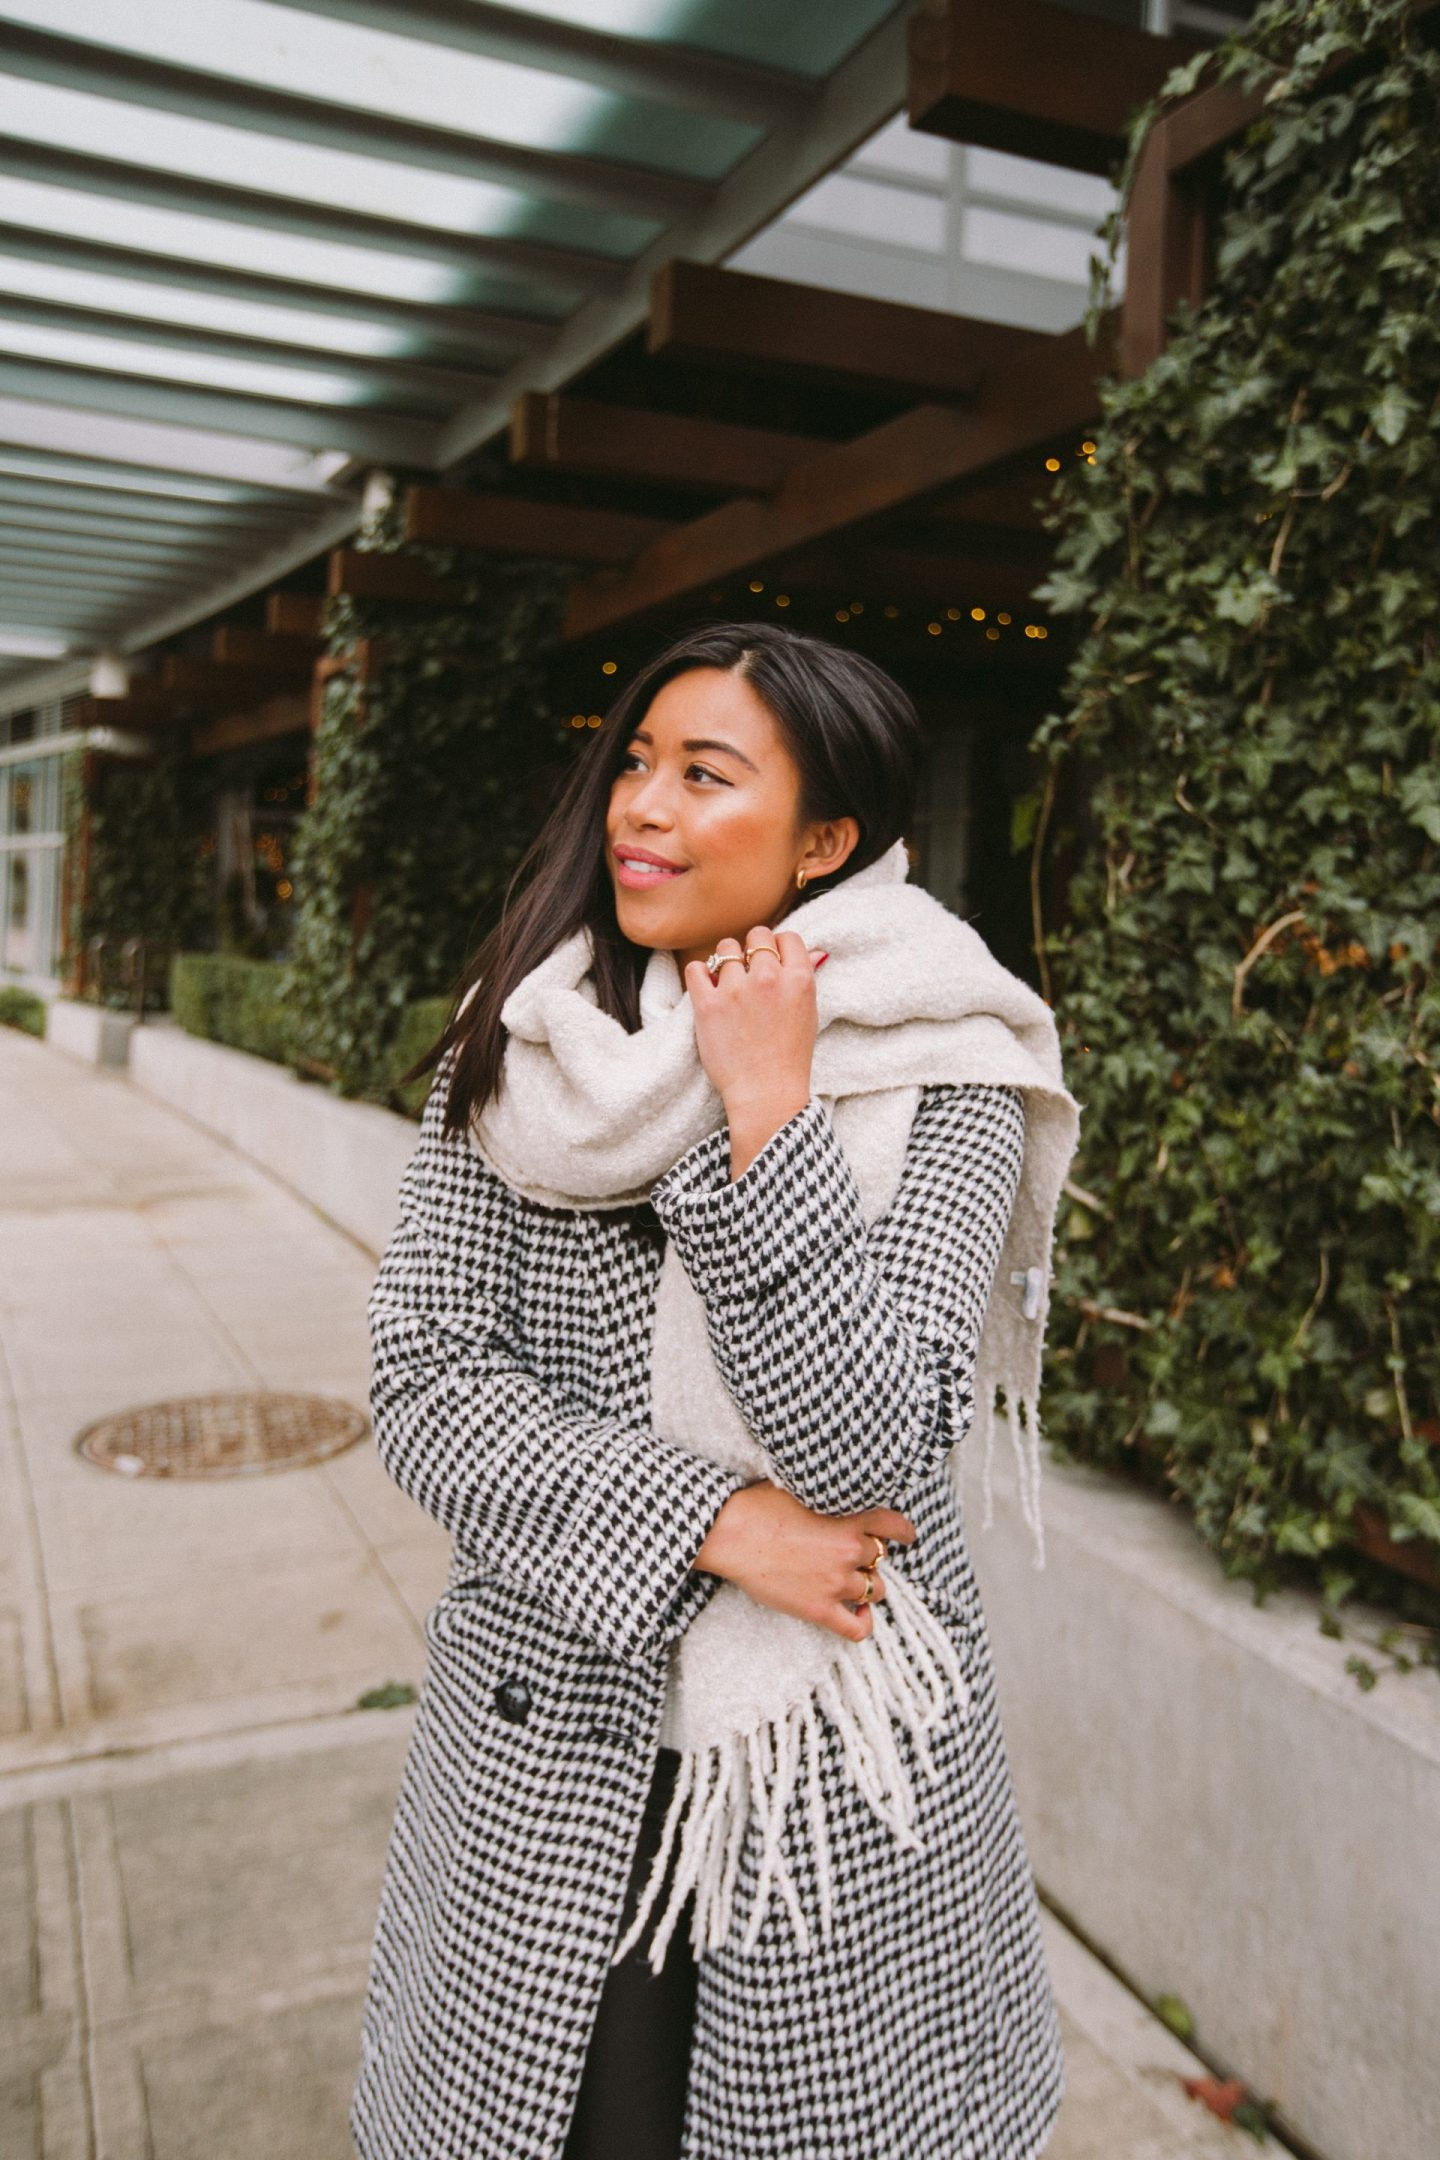 winter coats - winter outfit ideas for women - winter style - winter outfit ideas - Seattle winter outfits